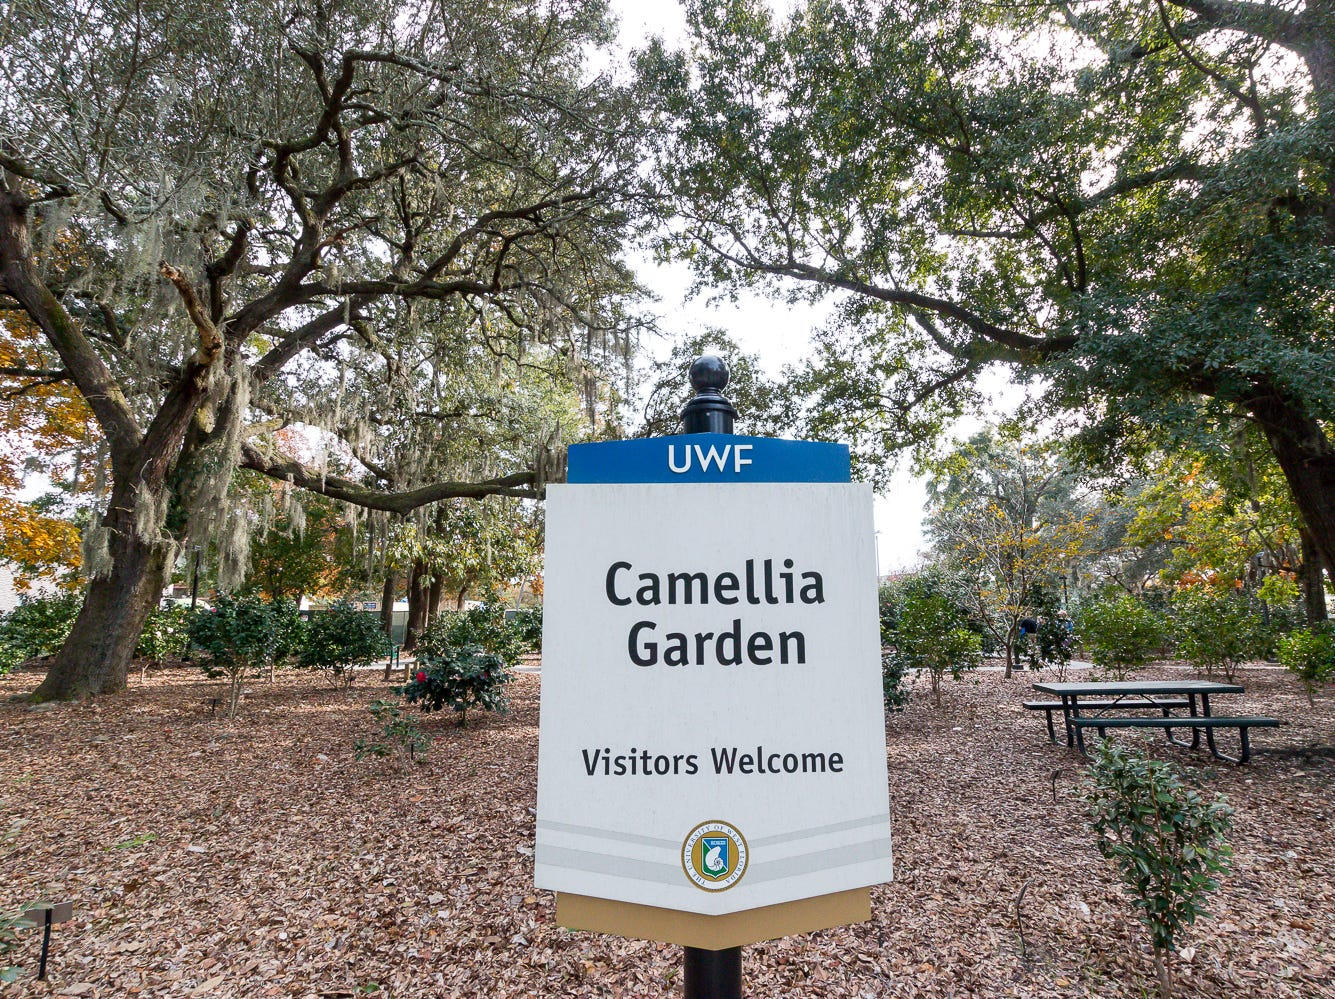 The Camellia Garden, co-sponsored by the Pensacola Camellia Club, has about 140 different camellia plants that bloom at different times throughout the year on the University of West Florida campus. Shown on Wednesday, November 28, 2018, the garden is located just east of Building 41 for Pyschology and Behavioral Sciences.